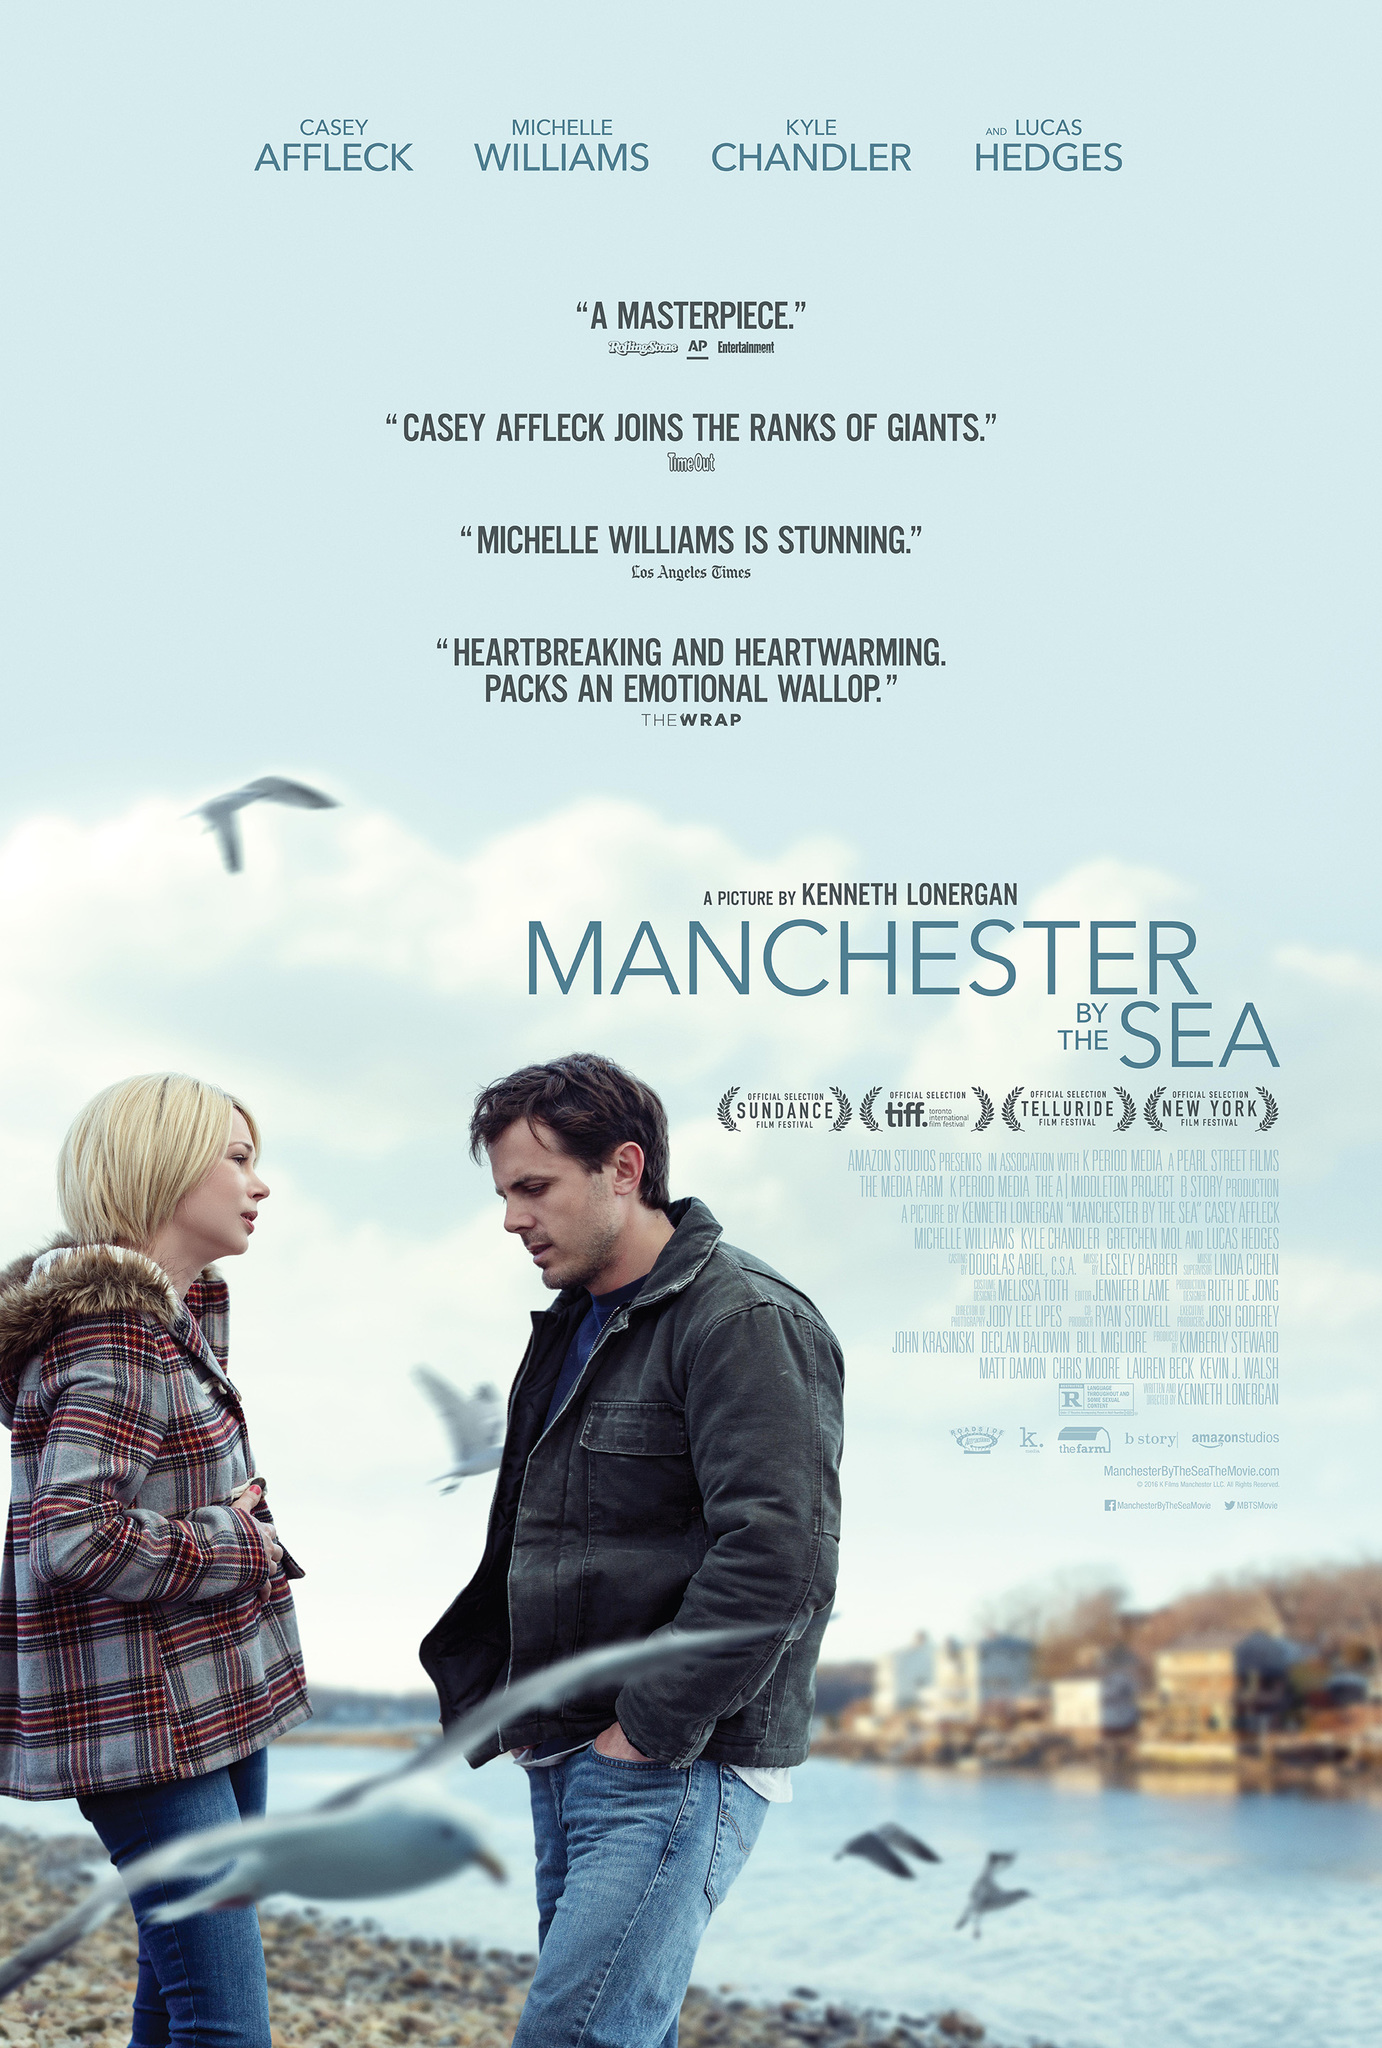 Image result for manchester by the sea movie poster""